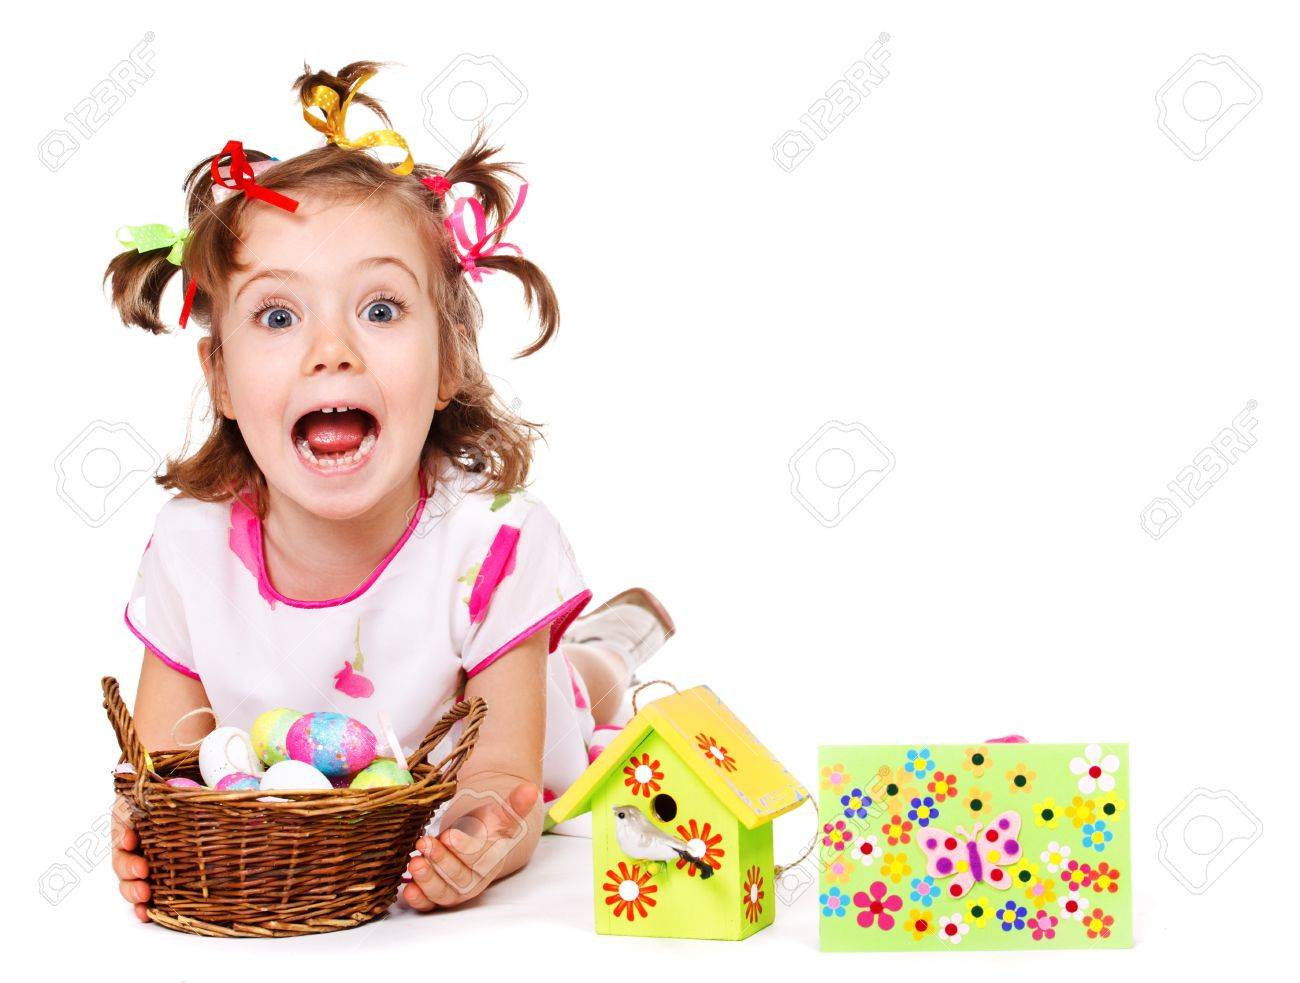 Funny little girl holding wicker basket with Easter eggs Stock Photo - 12193326